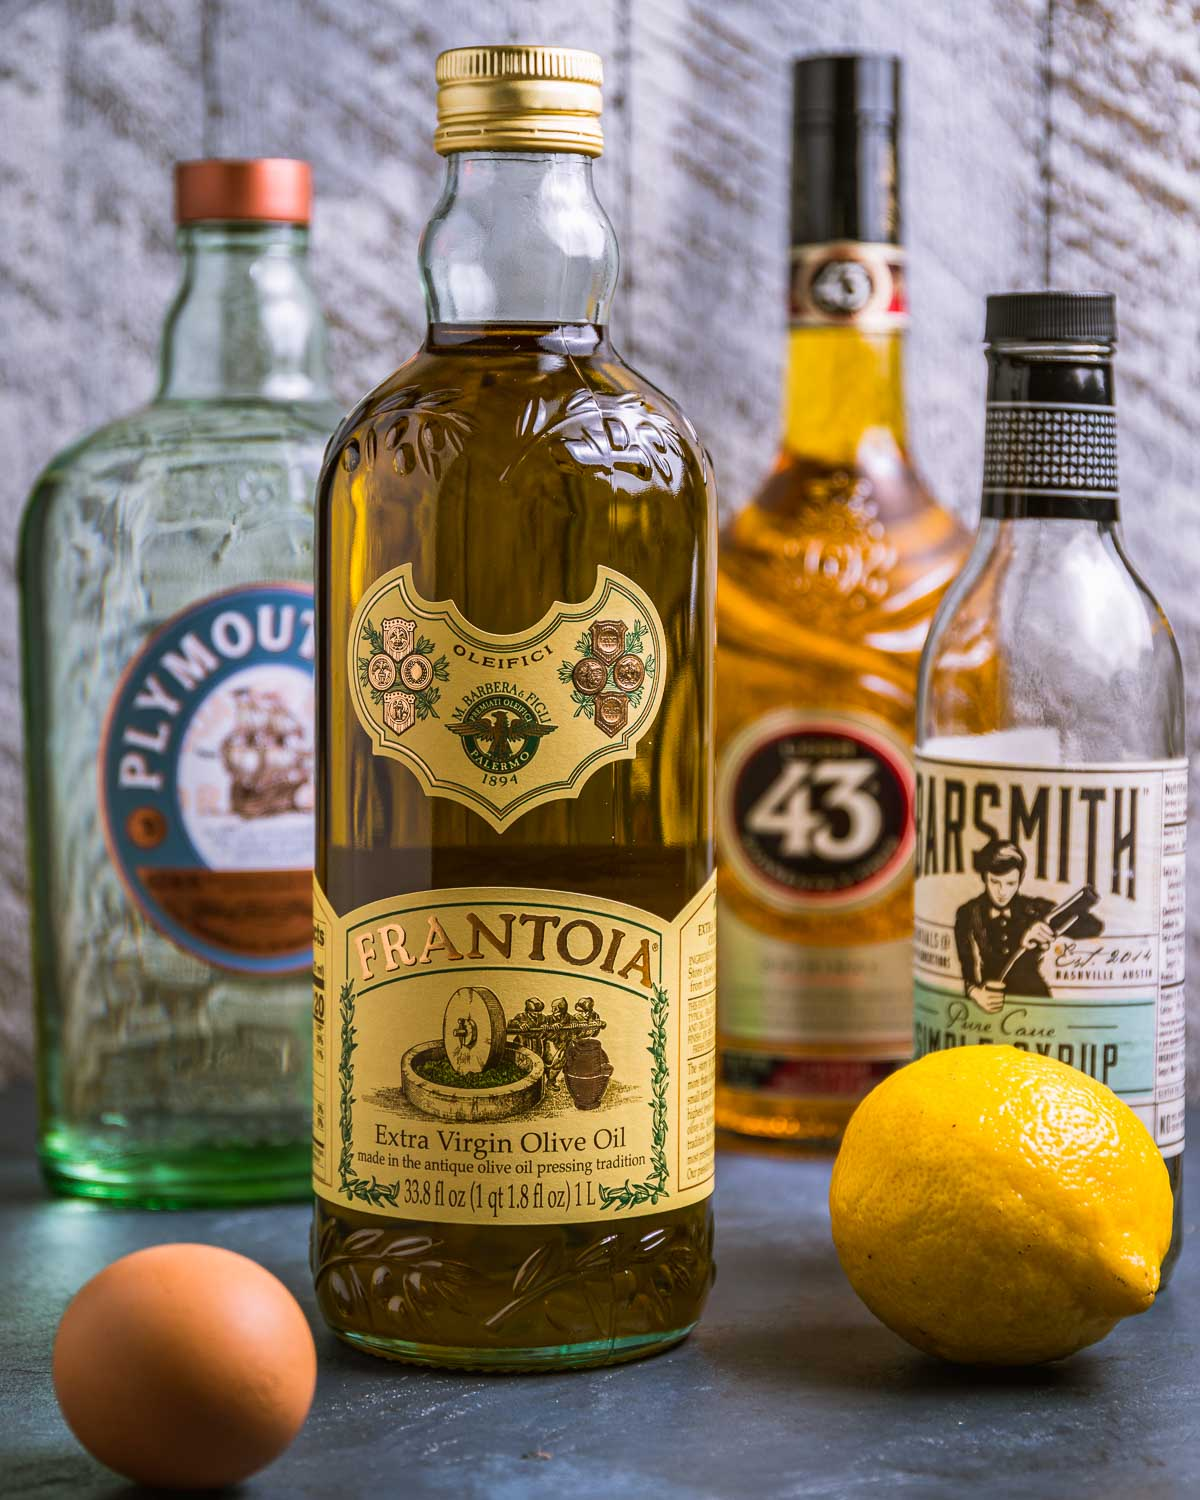 Ingredients shown: gin, olive oil, 43 liqueur, simple syrup, lemon, and egg.